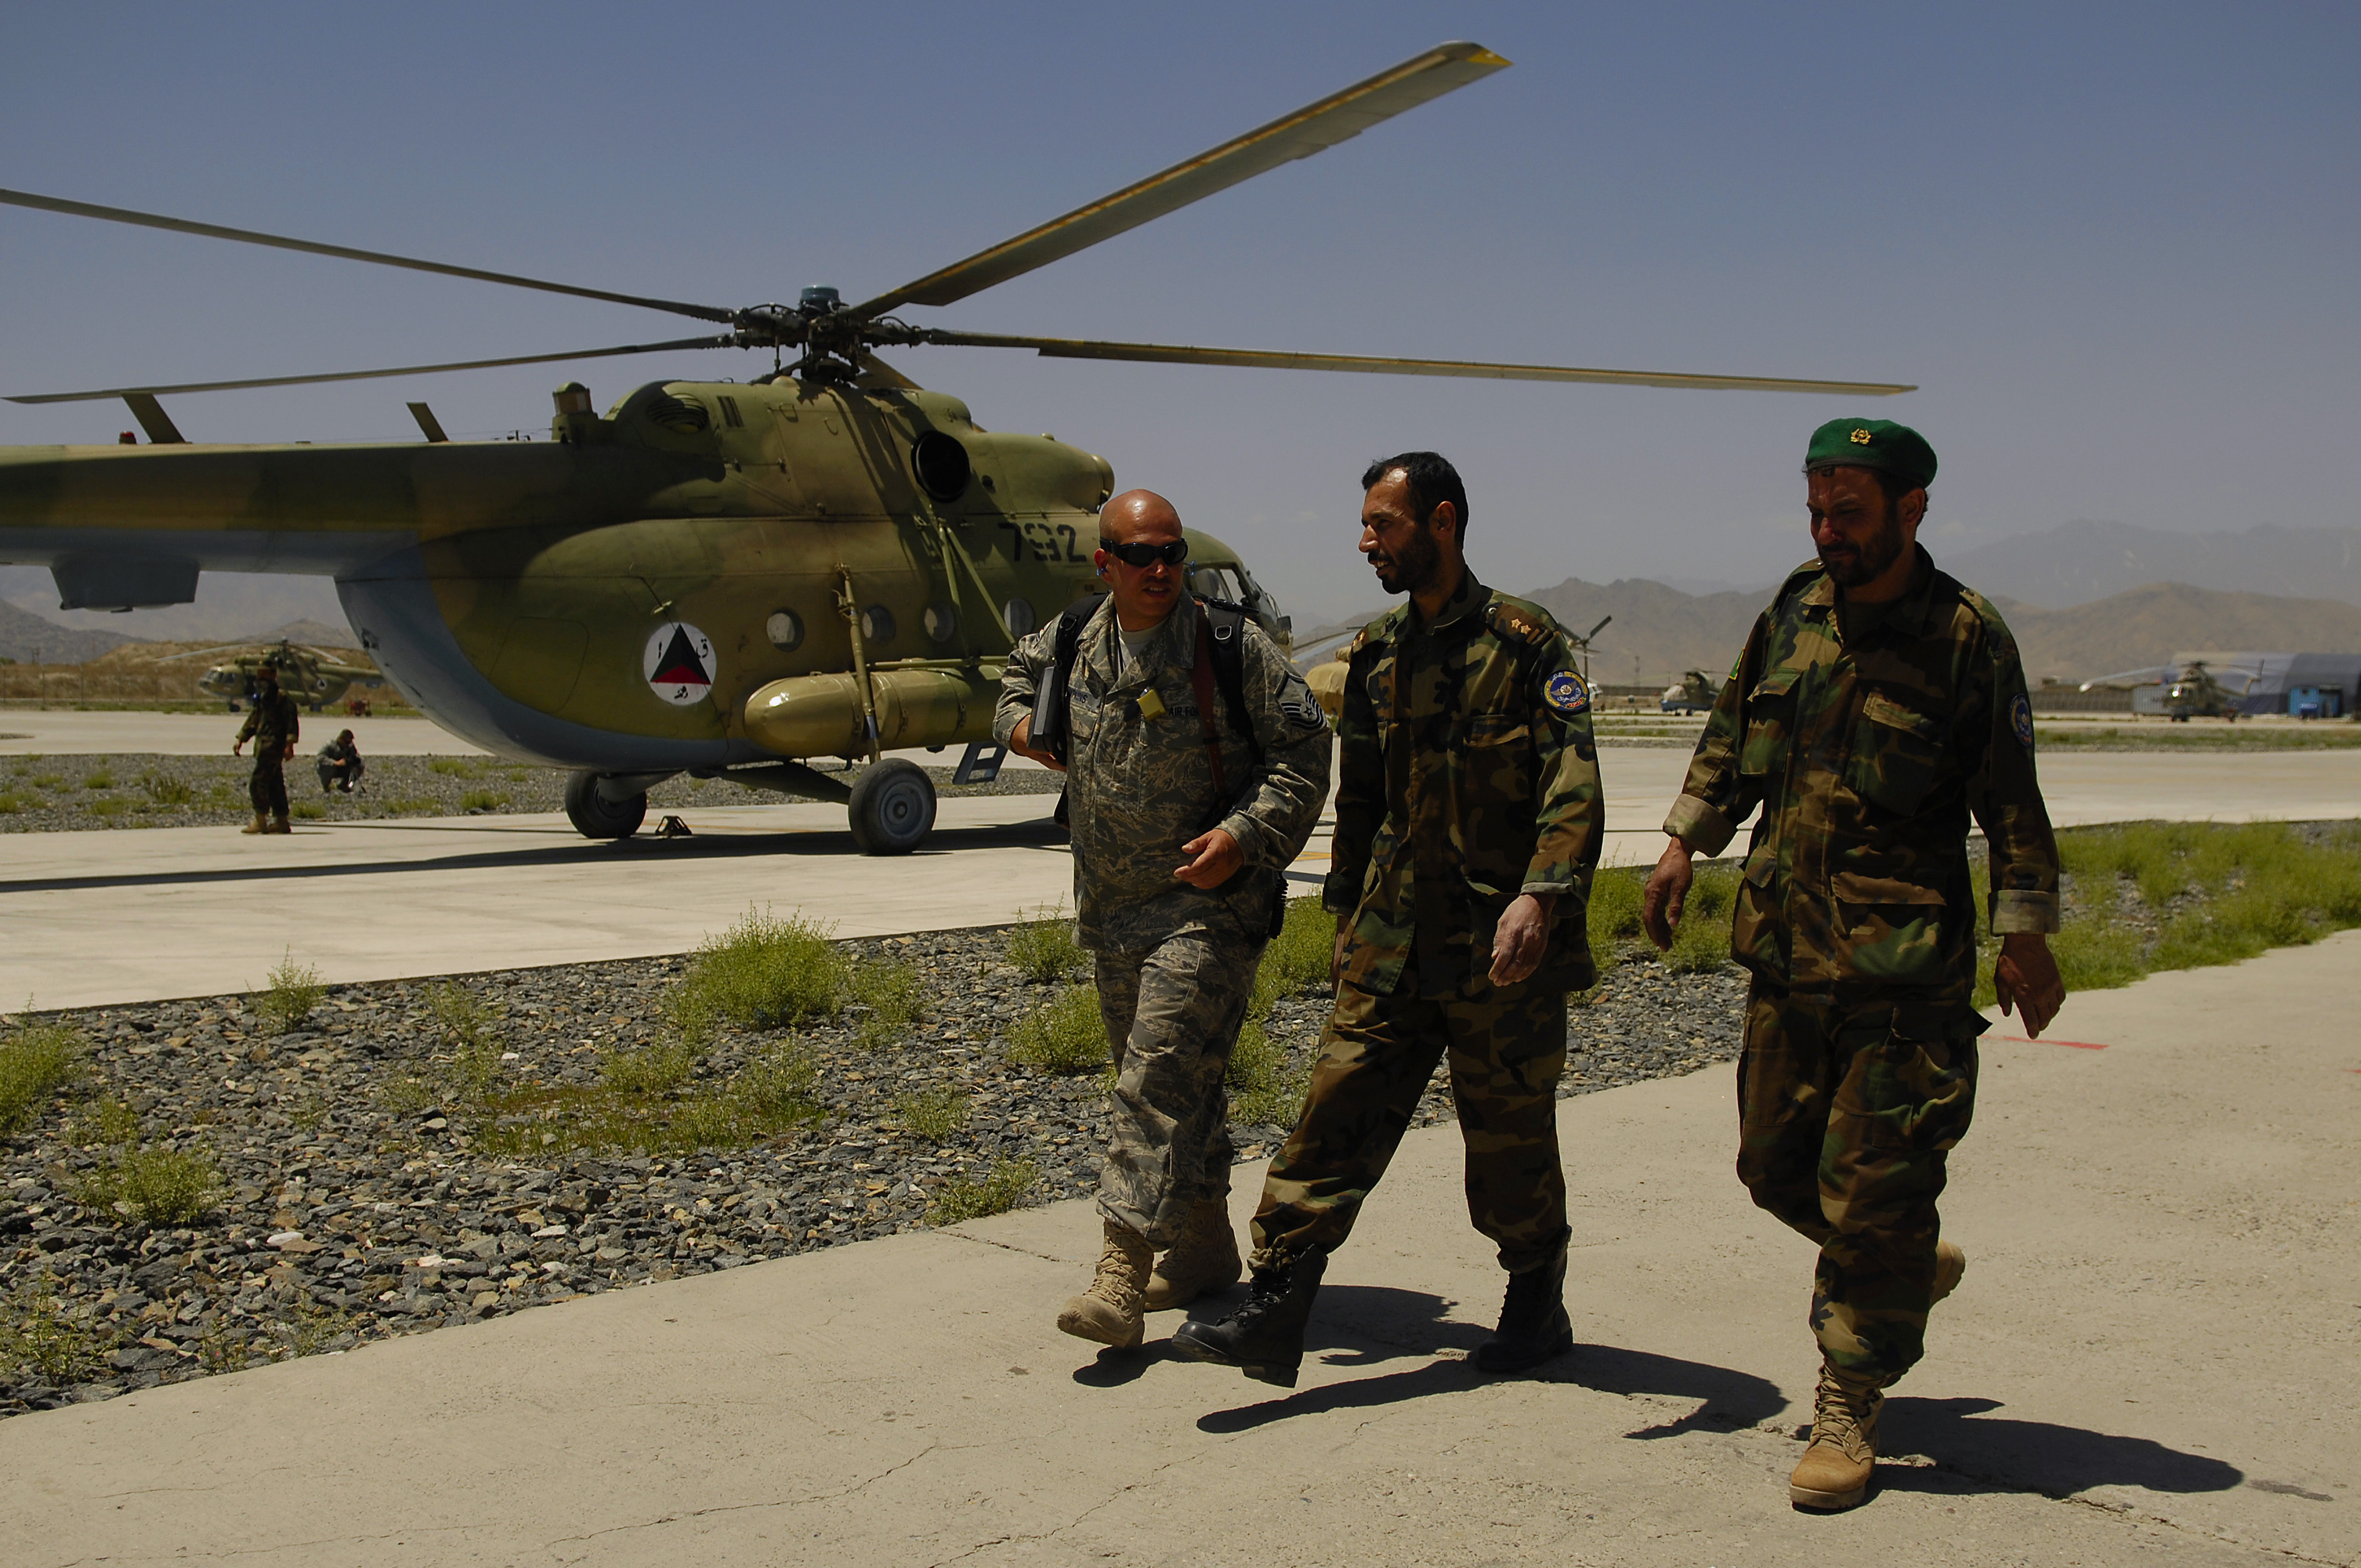 mi 17 helicopter with File Mi 17 2008 Kabul Afghanistan 2 on 4 Russian Mi 17 Helicopters To Afghan Army For 435M 05661 in addition Open photo additionally T10 IS 8 Spearhead Into World War 3 372900616 likewise Mi 17 images furthermore Open photo.